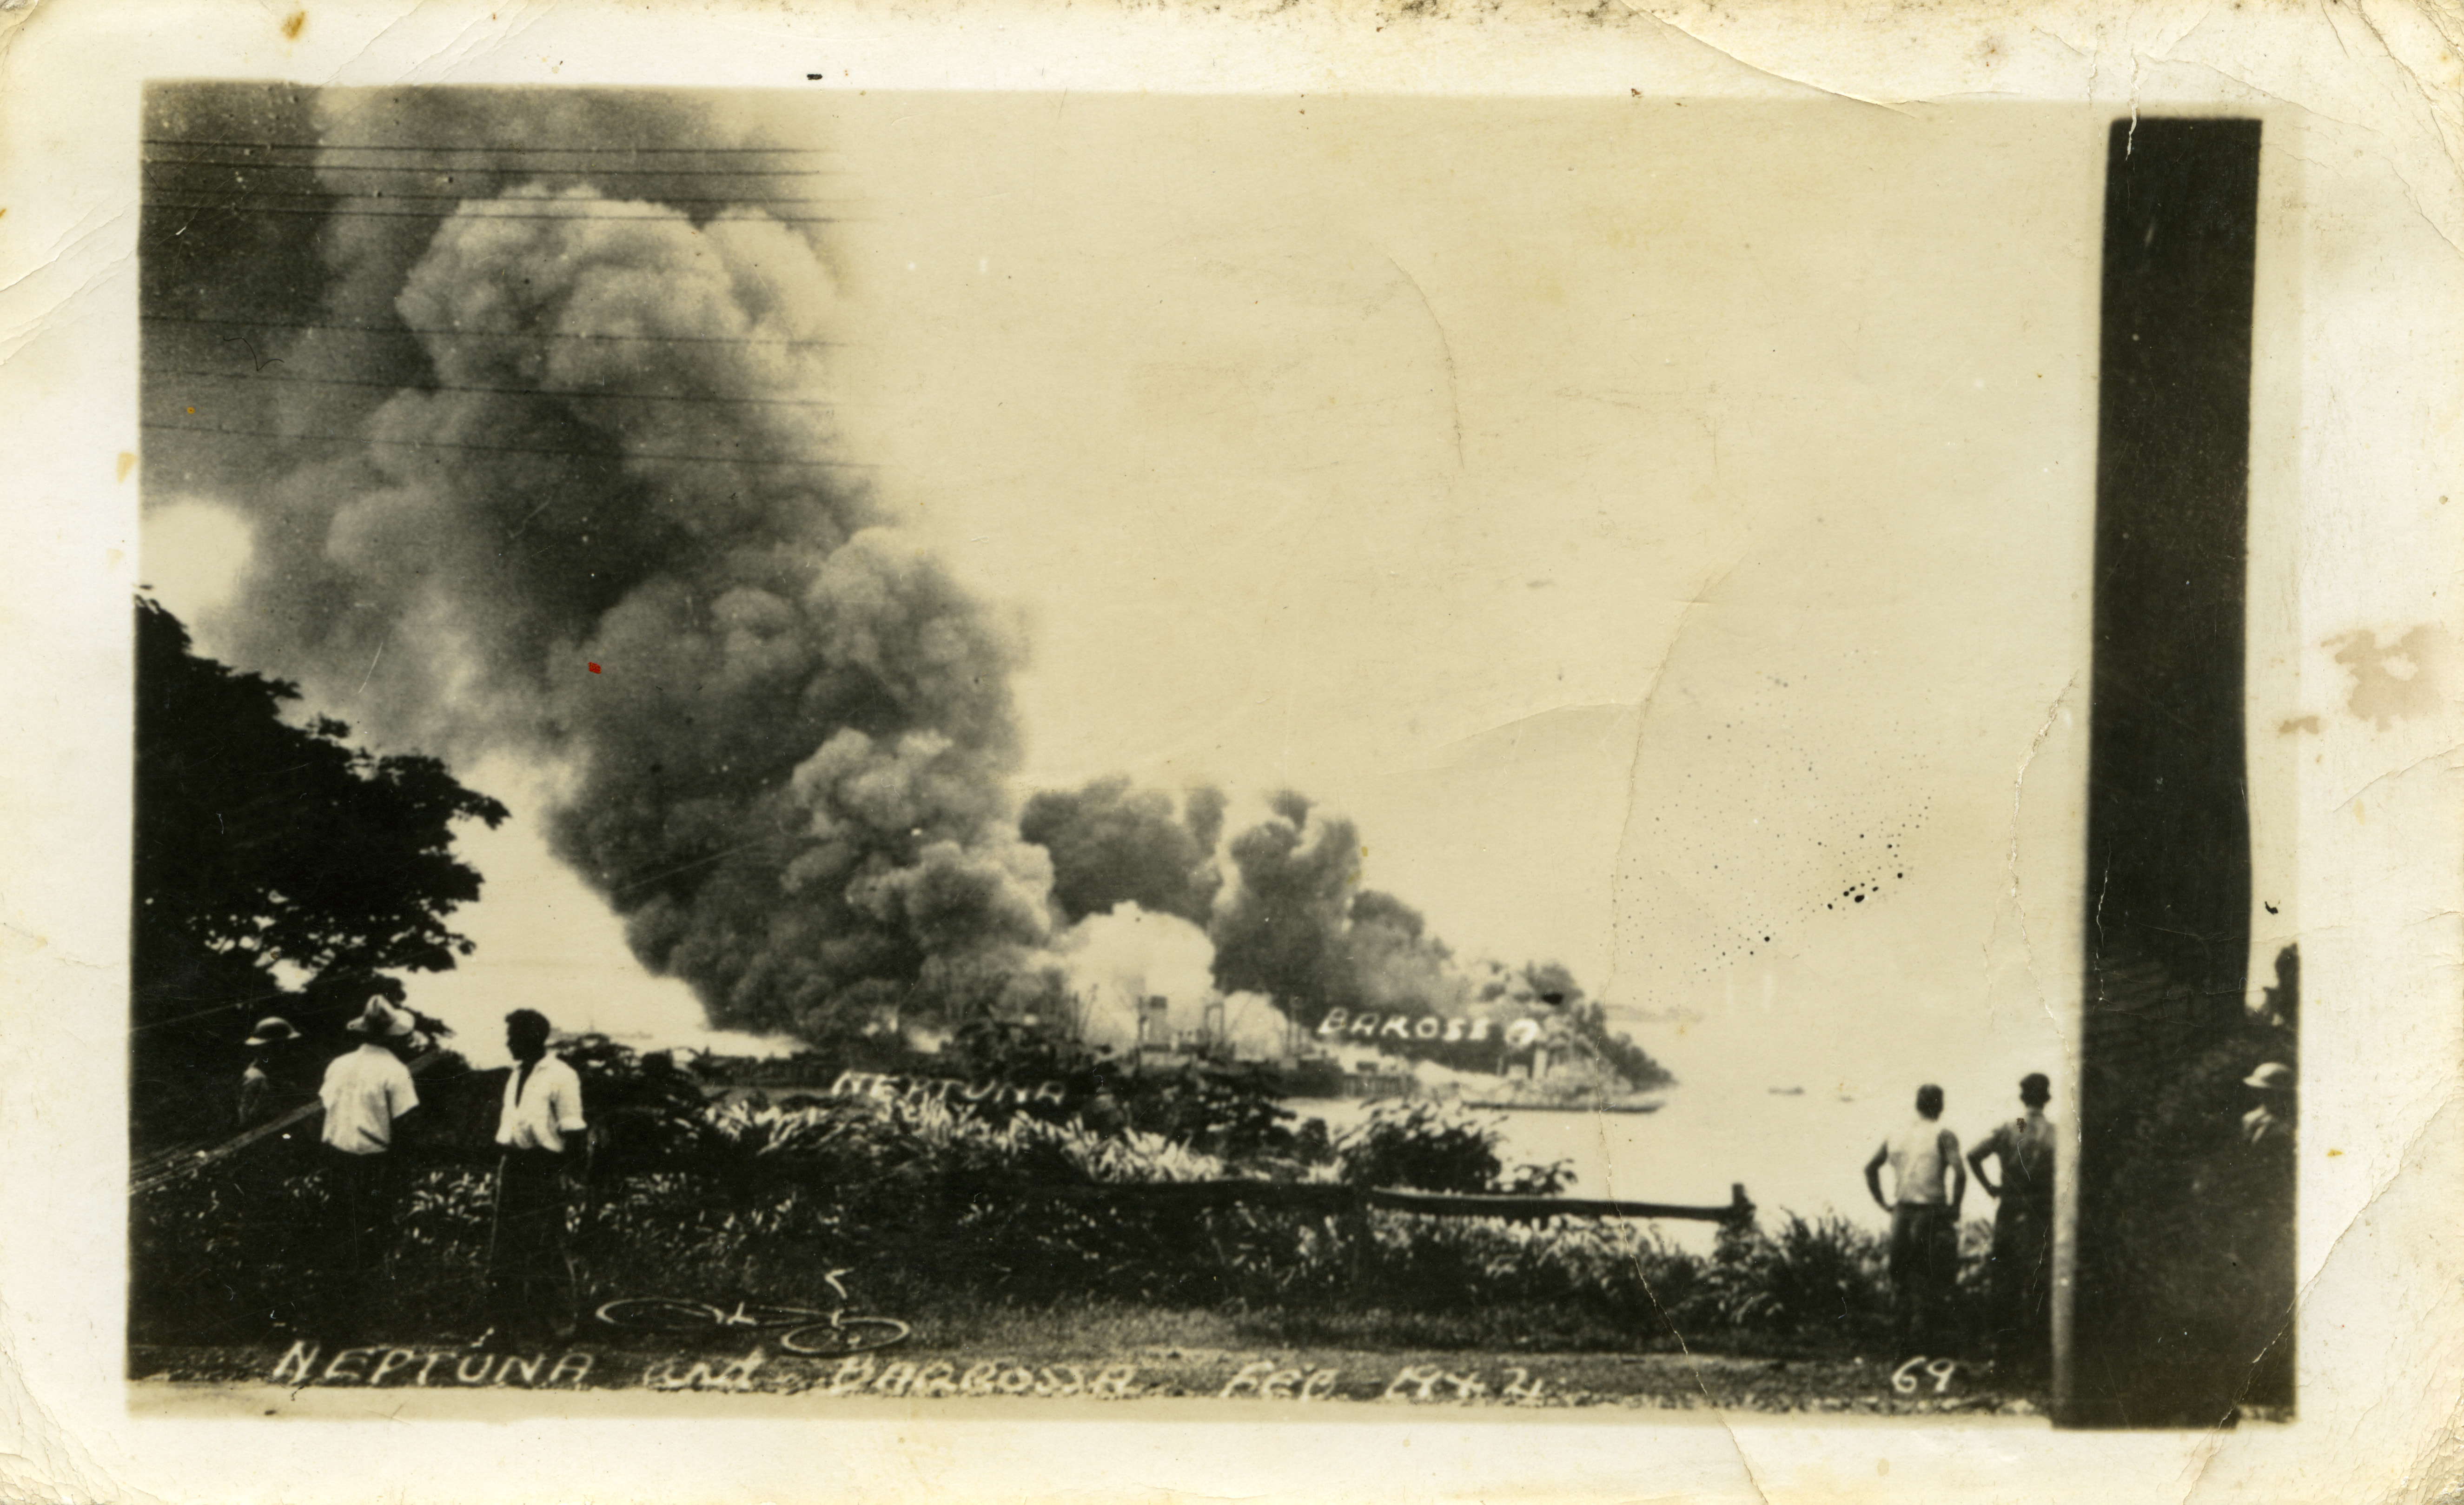 Onlookers observe burning ships in Darwin Harbour after the first Japanese bombing raid in February 1942.